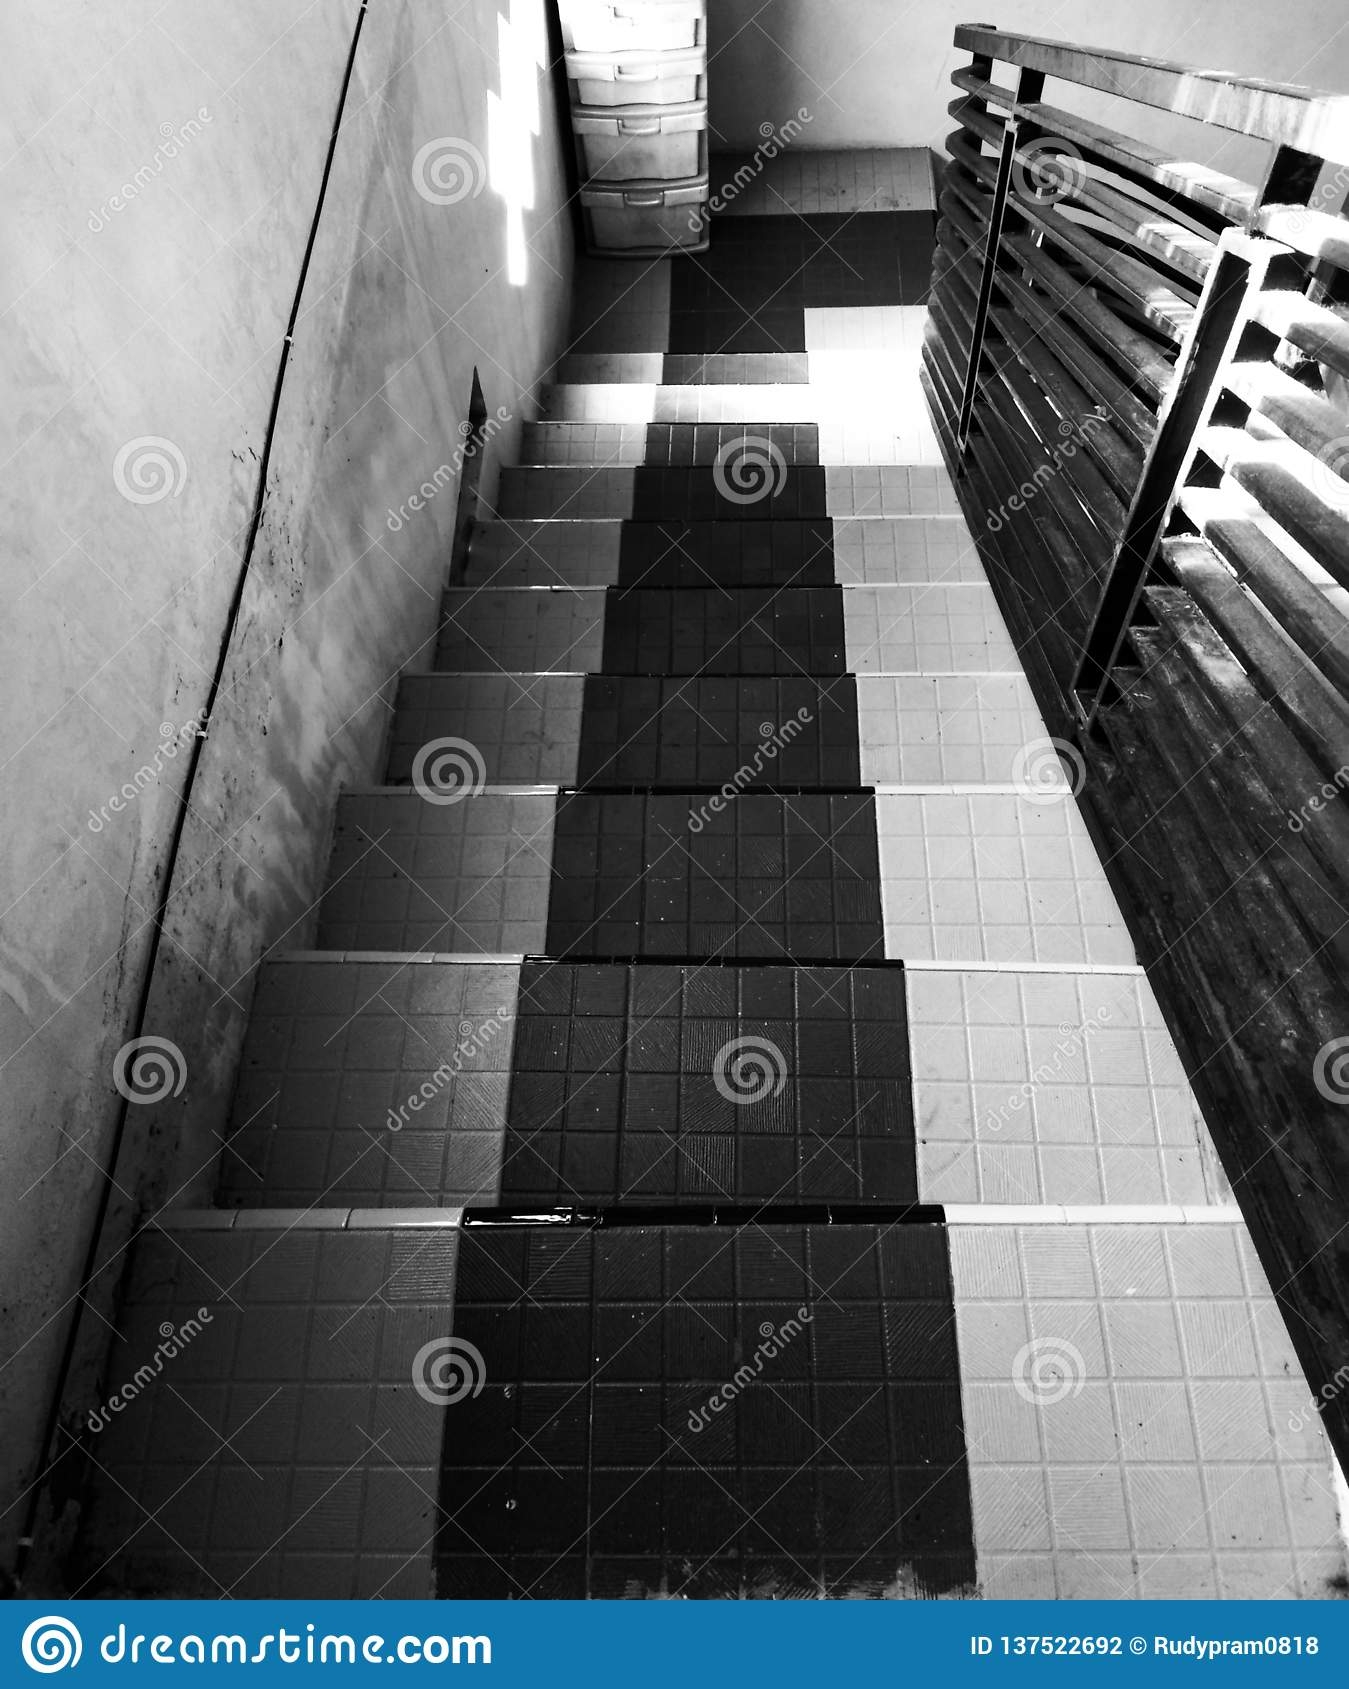 Stair Design Stock Photo Image Of Object Stairs Tile 137522692   Black And White Stairs Design   Farmhouse   Photography   Concept   Disappearing   Grey Background